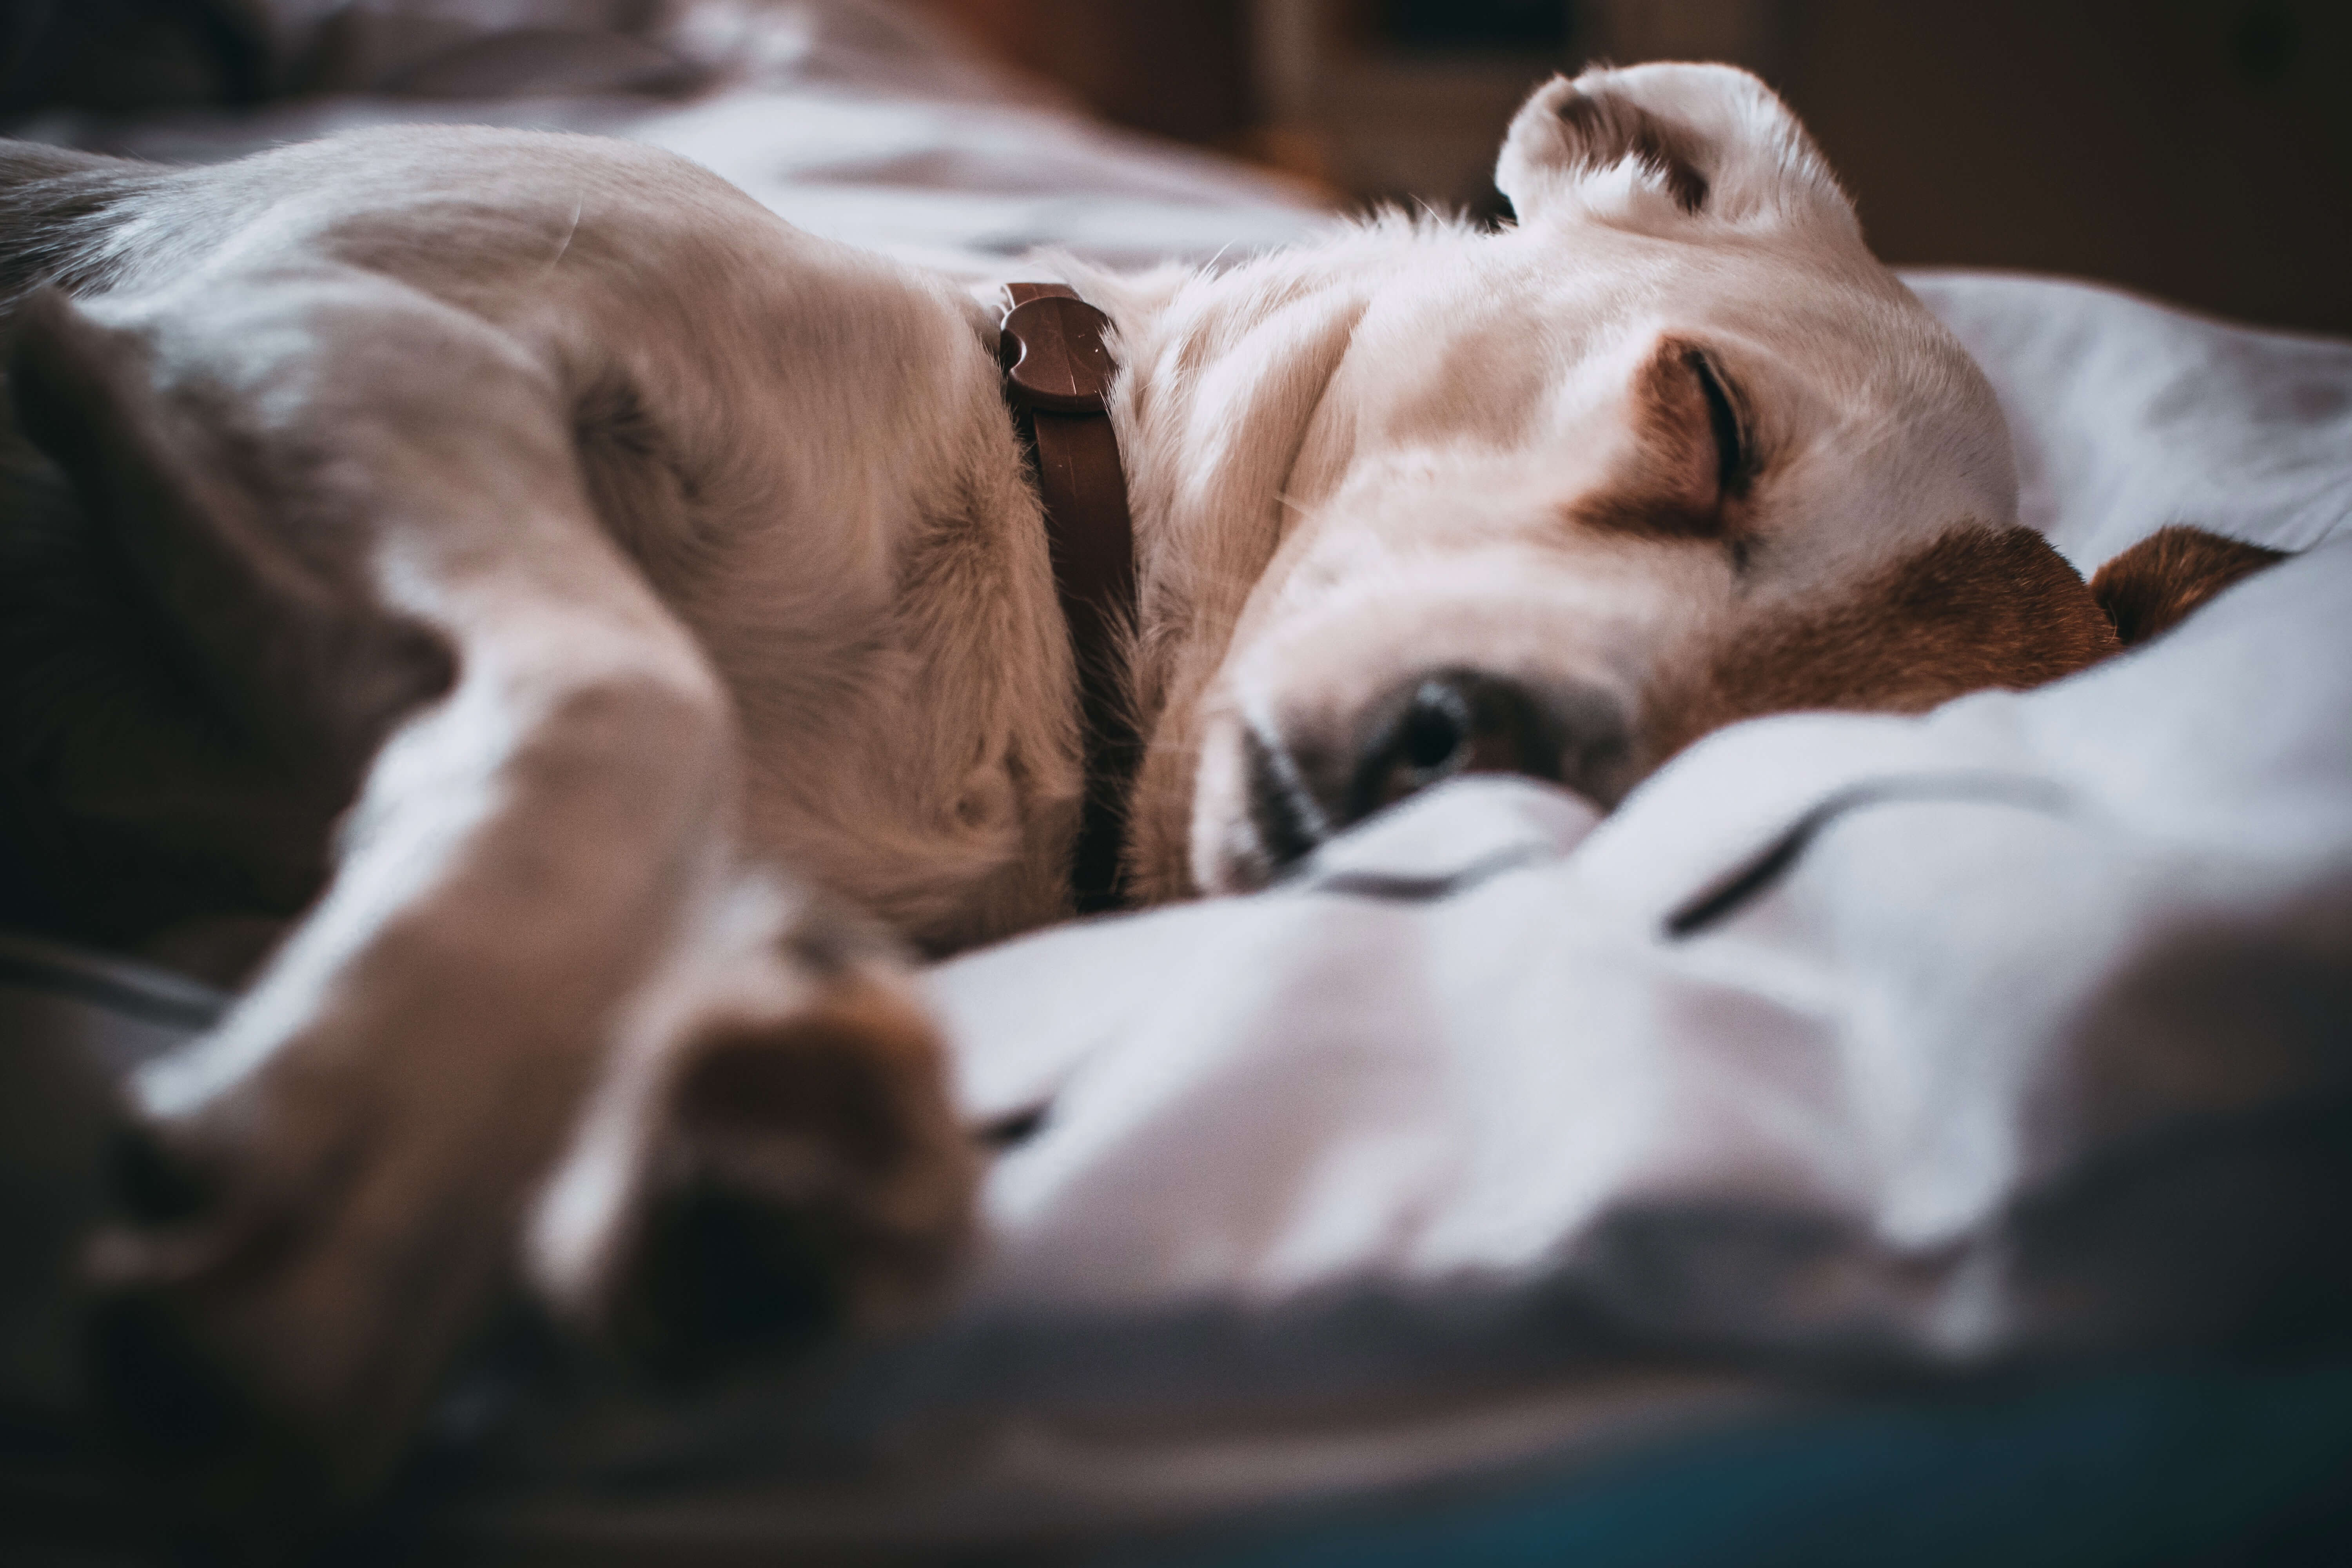 Dog sleeping on the bed. Sleep is important for your health.